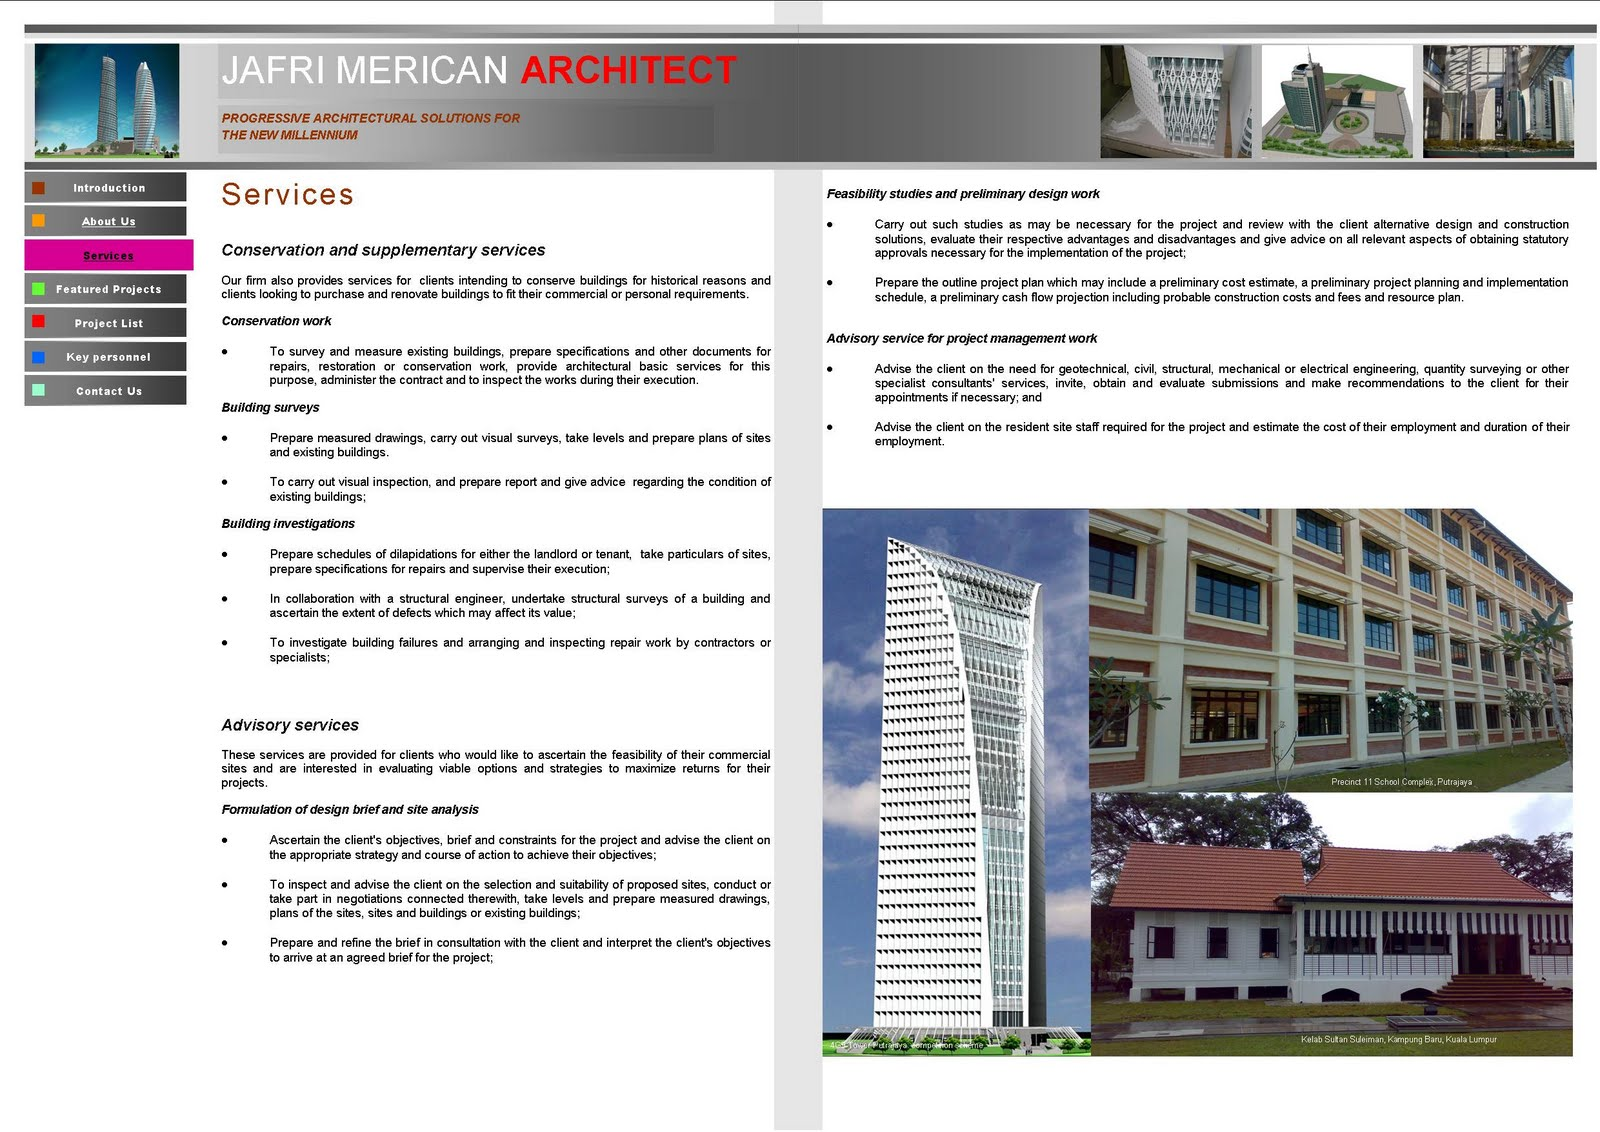 jafri merican architect cv services jafri merican architect is an architectural consultancy firm registered the board of architects lembaga arkitek lam